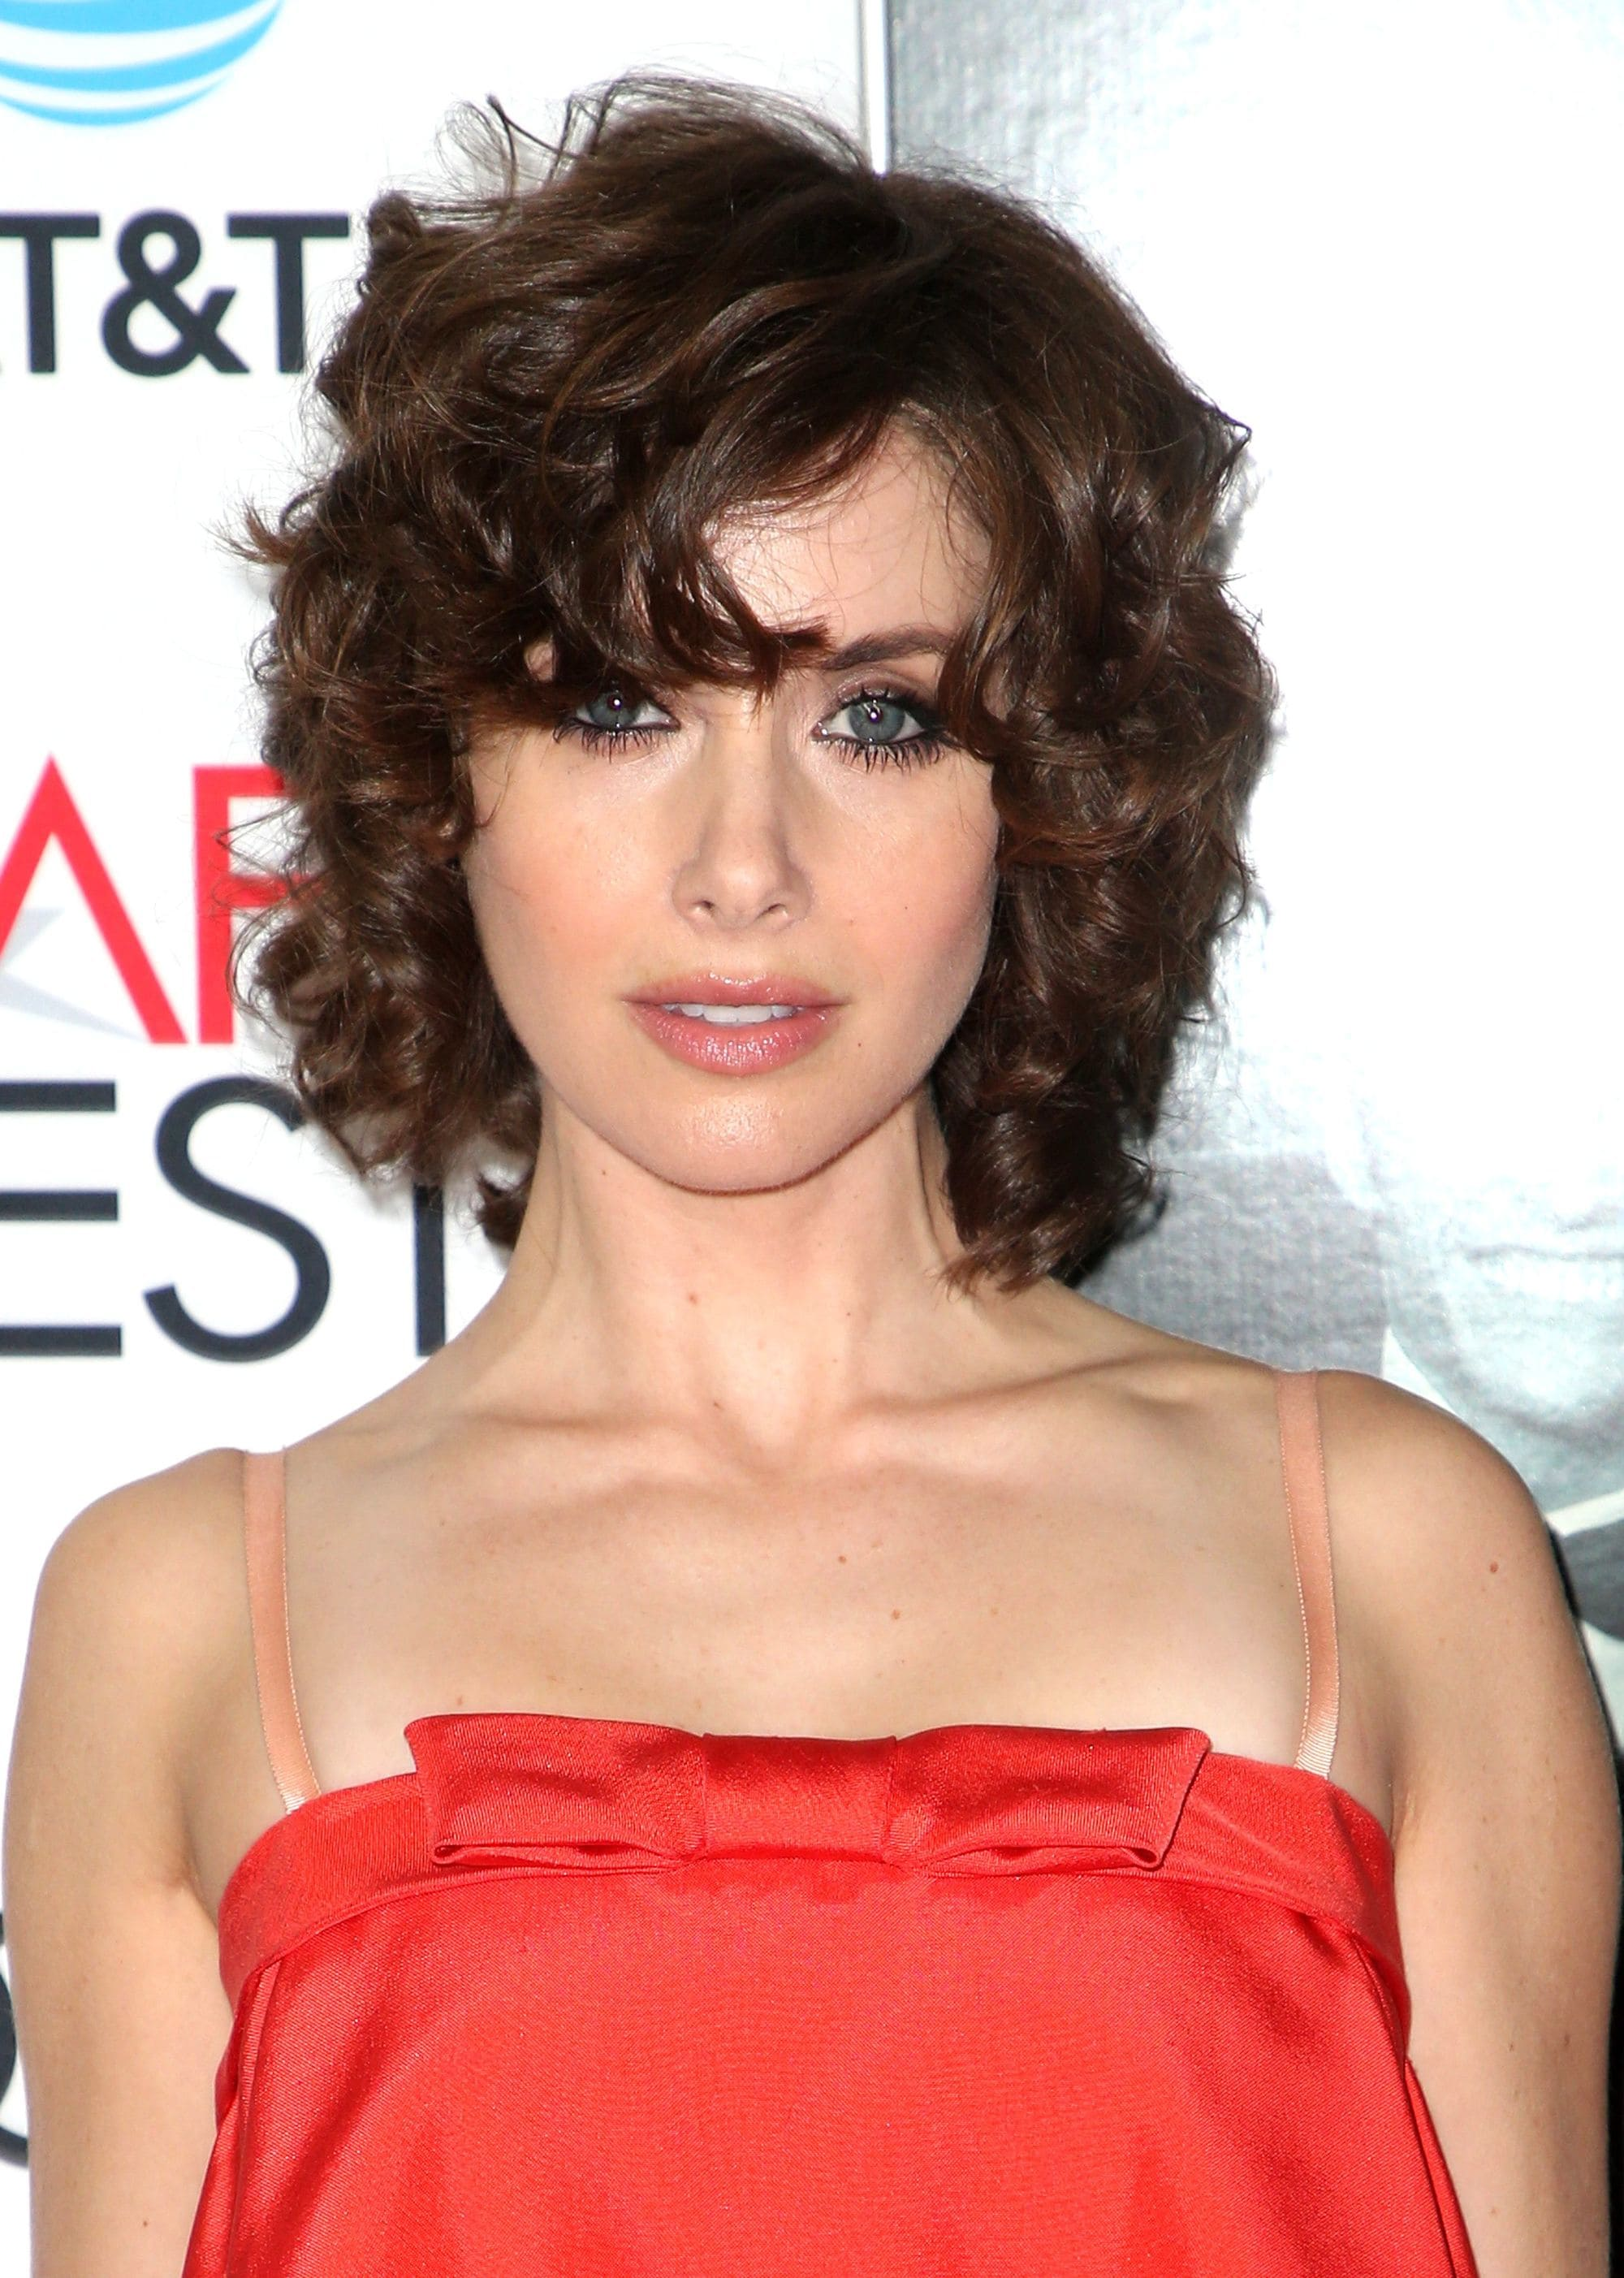 Bob hairstyles: Alison Brie with cropped curly bob hair, wearing red strapless dress on the red carpet